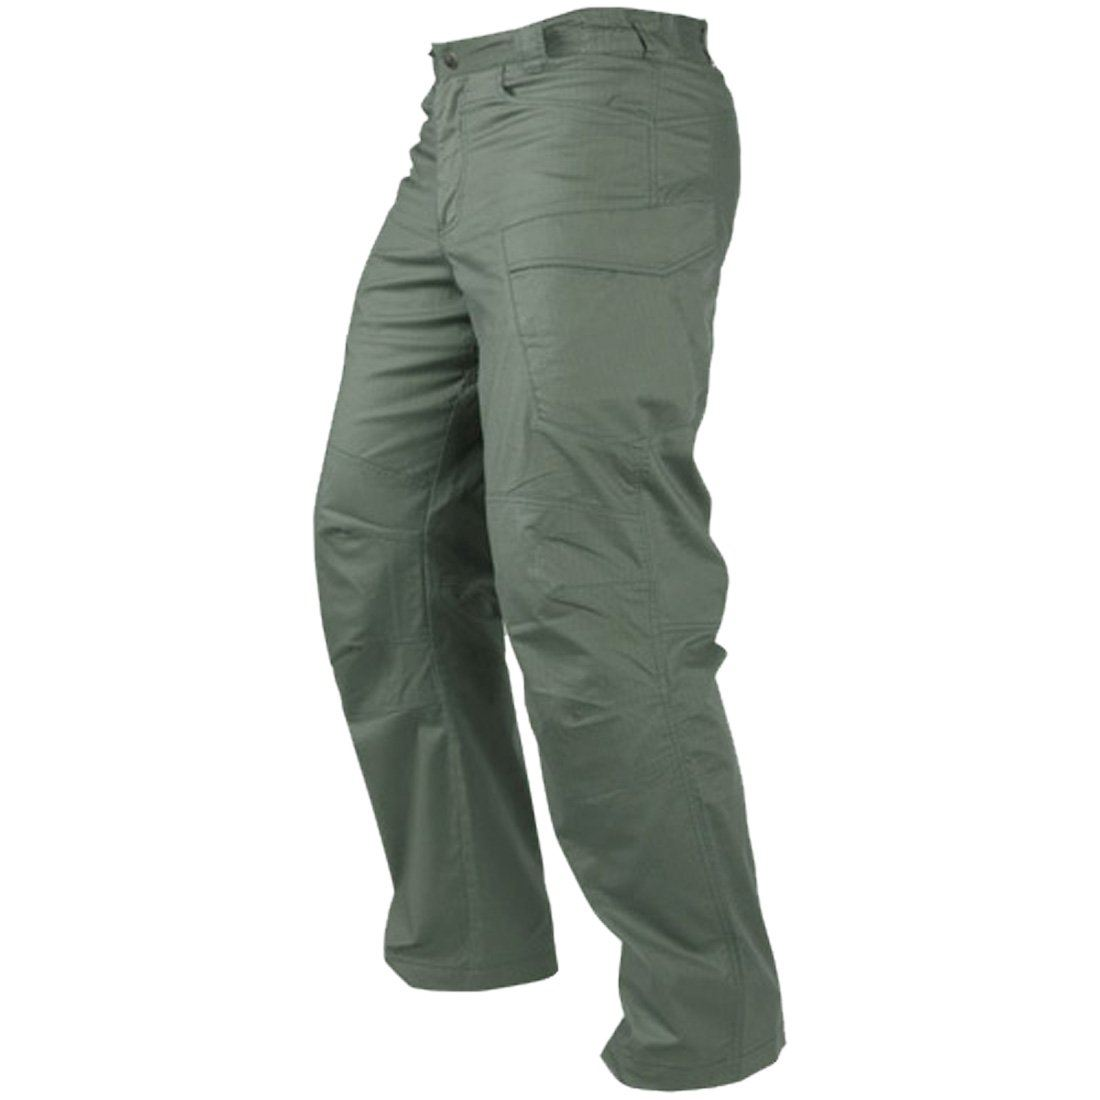 CONDOR NEW STEALTH OPERATOR PANTS MENS TACTICAL COMBAT CARGO RIPSTOP TROUSERS